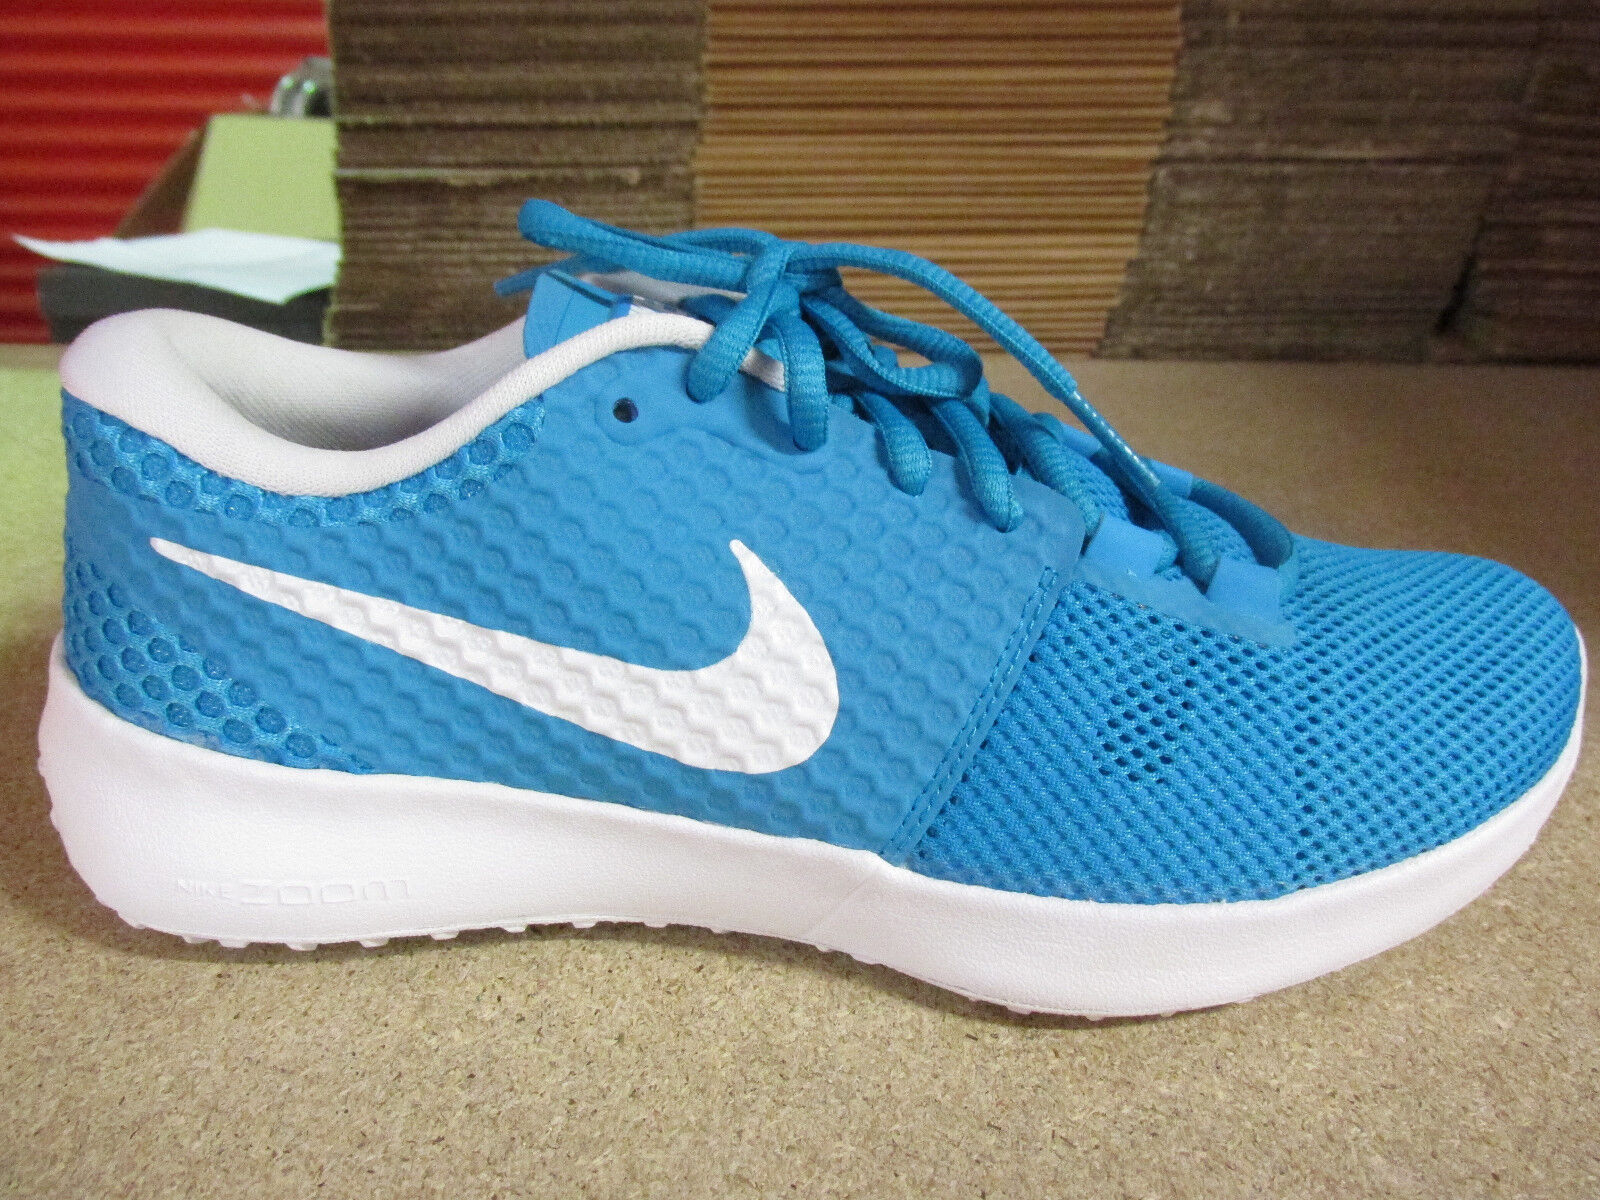 nike zoom speed TR2 homme homme TR2  running trainers 684621 410 Baskets  chaussures c1cc86